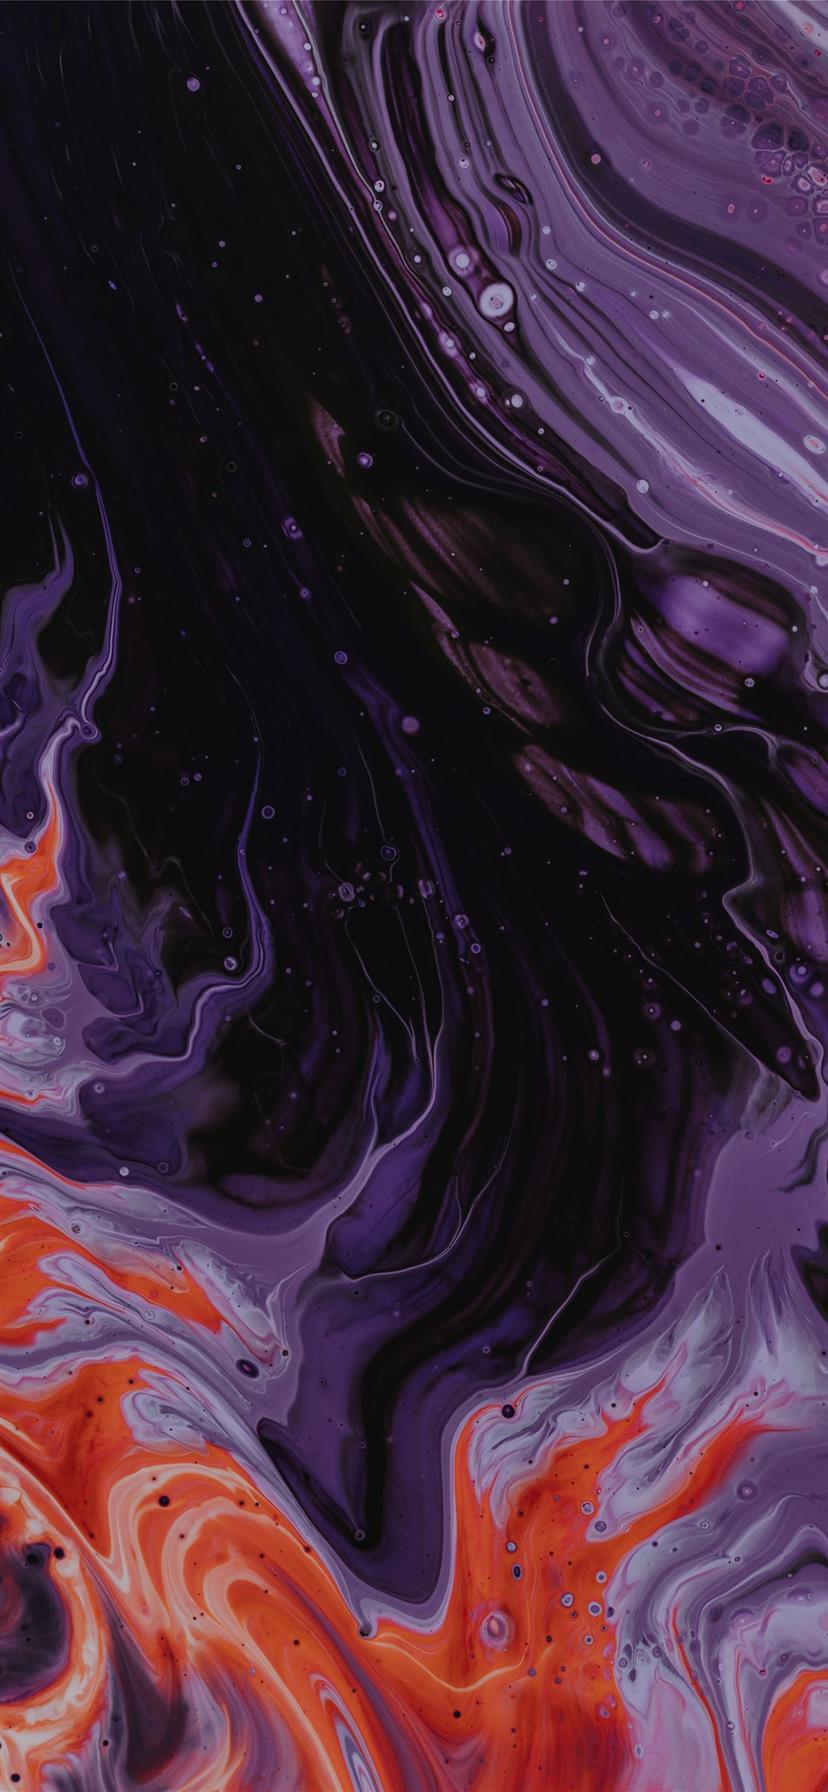 Purple Black And Orange Abstract Paintin Iphone Wallpapers